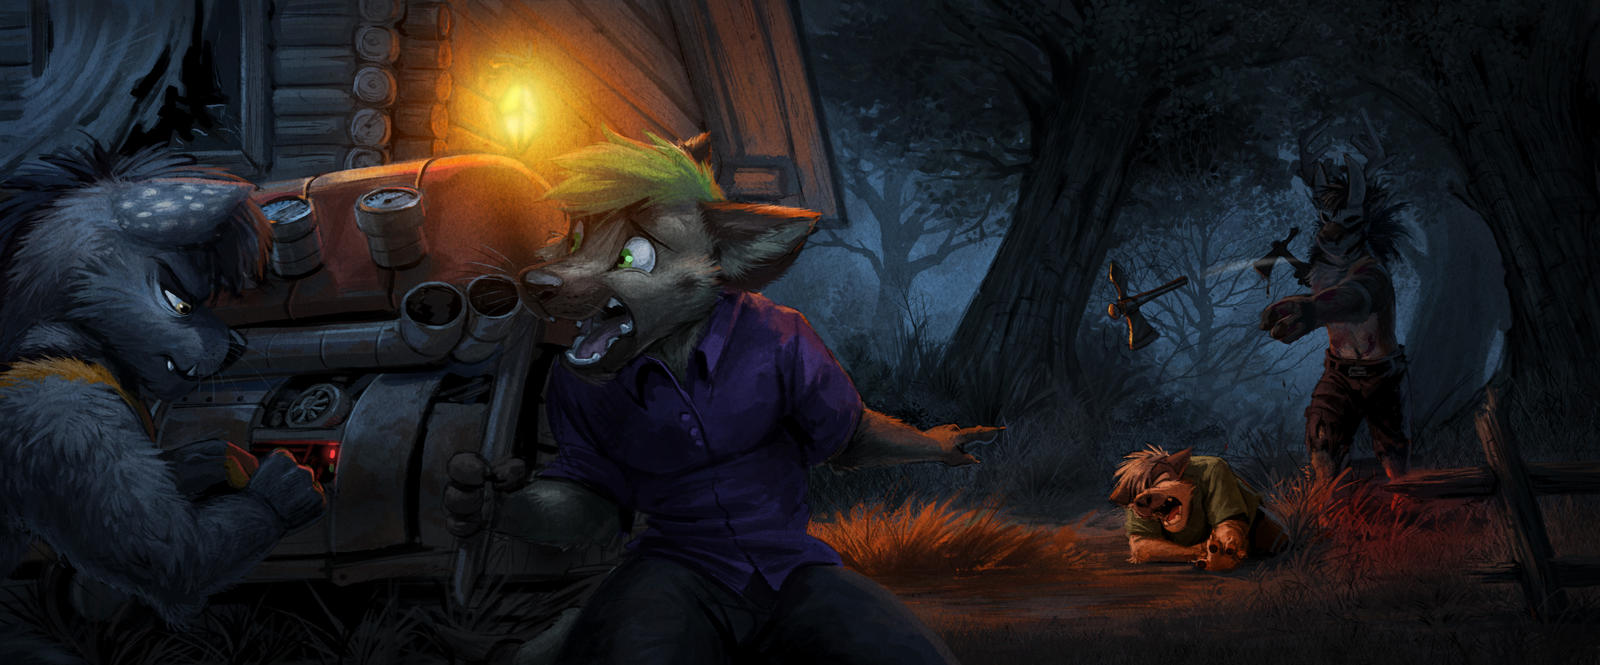 Commission: Whyamihereagain (He's Coming!)